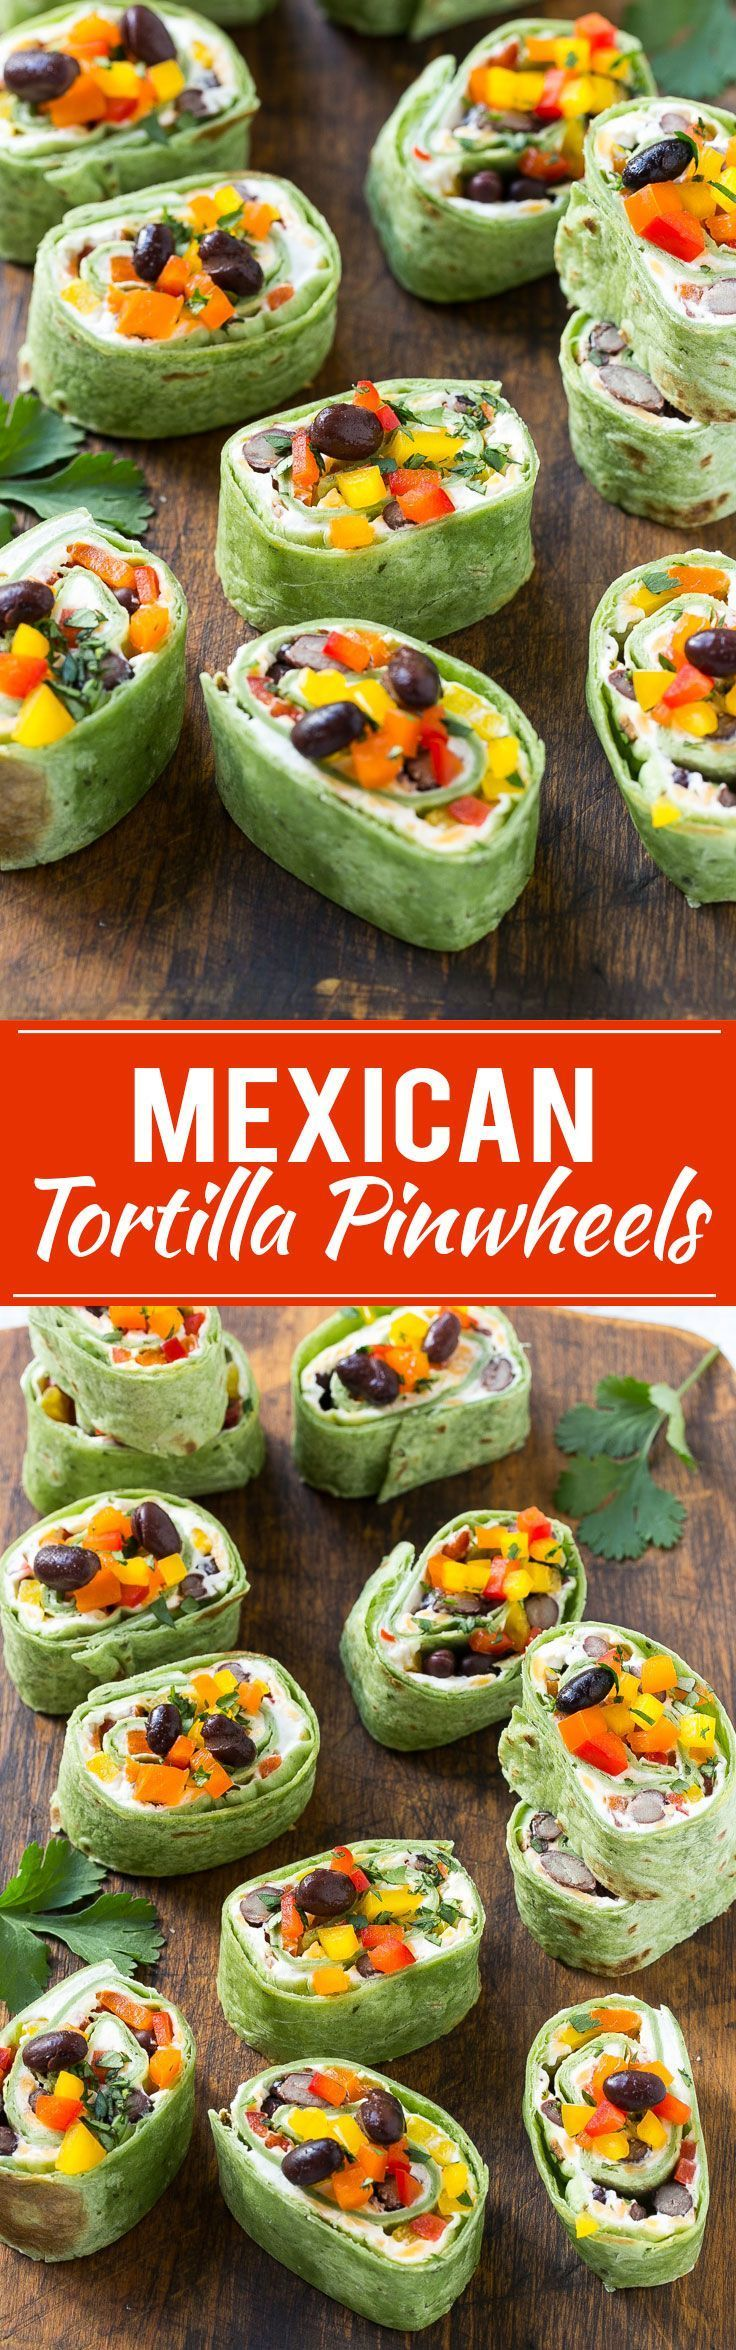 This recipe for Mexican tortilla pinwheels is two types of cheese, black beans and colorful veggies all rolled up inside tortillas and cut into rounds. The perfect make-ahead snack or appetizer!